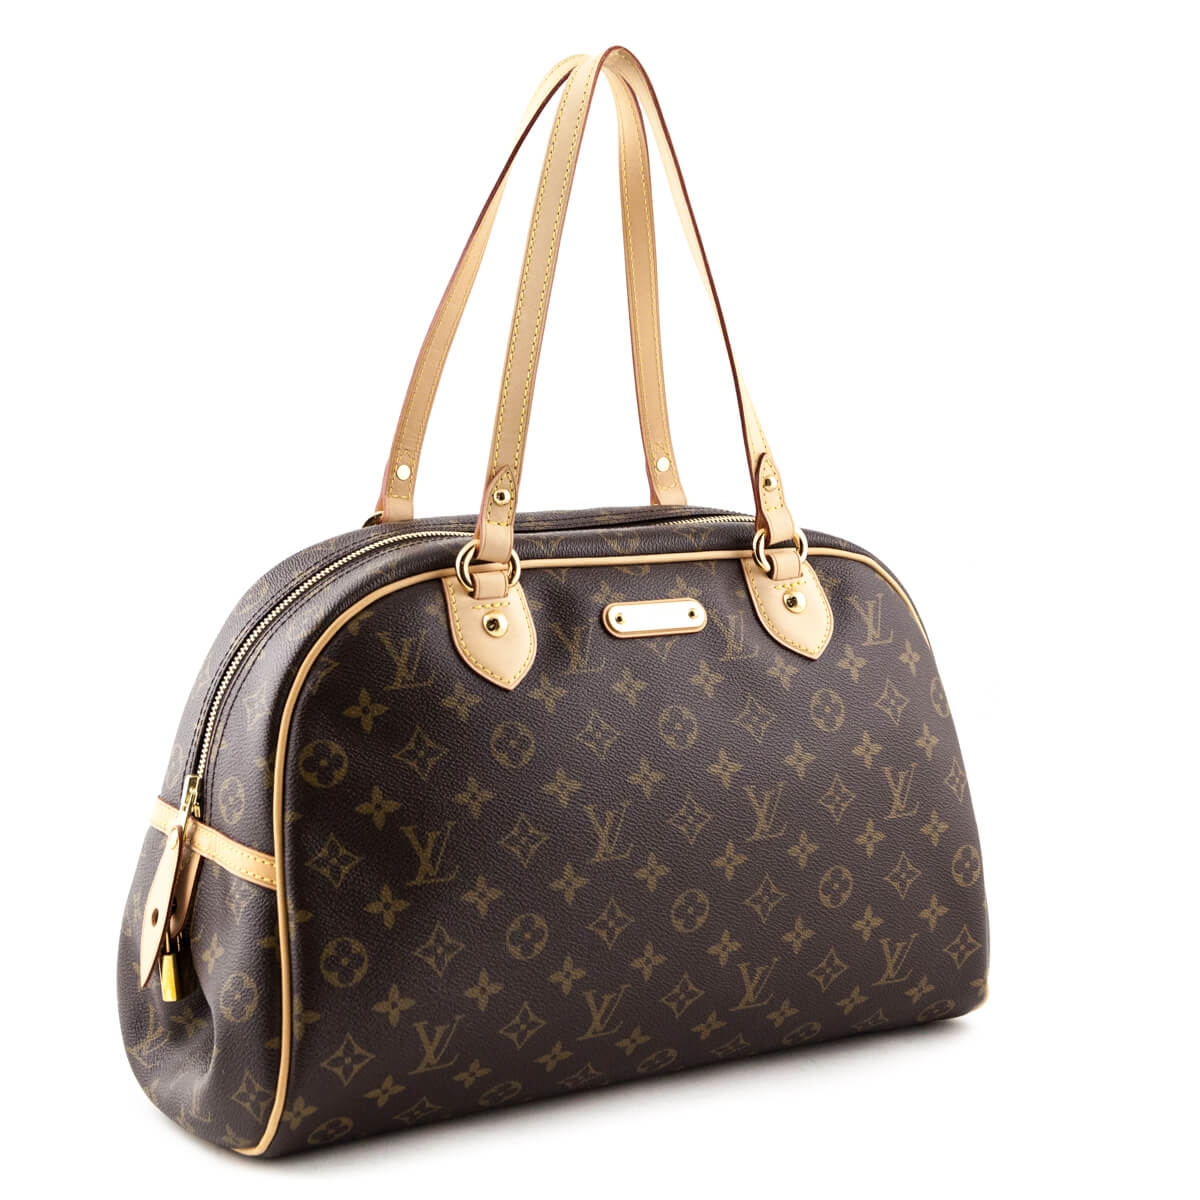 cb628861348e ... Louis Vuitton Monogram Montorgueil GM - LOVE that BAG - Preowned  Authentic Designer Handbags ...